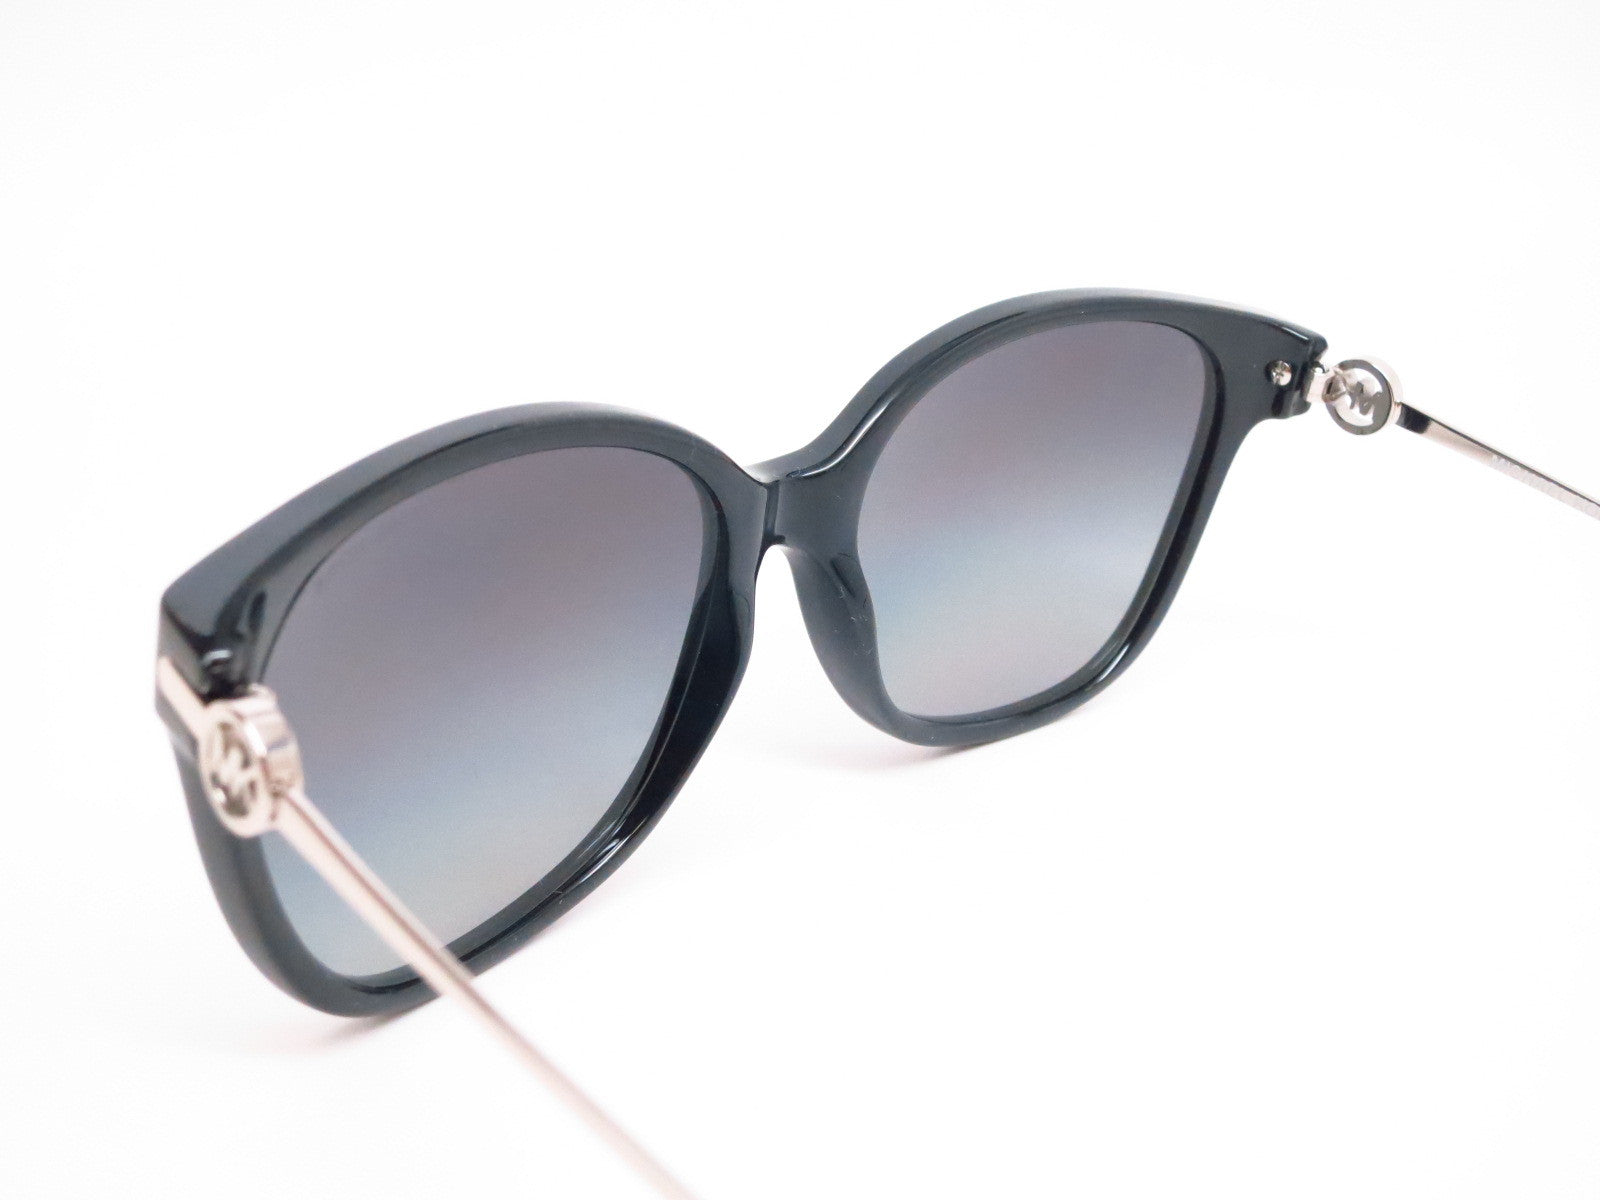 14978e9844 ... Michael Kors MK 6006 Marrakesh 3005 T3 Black Polarized Sunglasses - Eye  Heart Shades ...